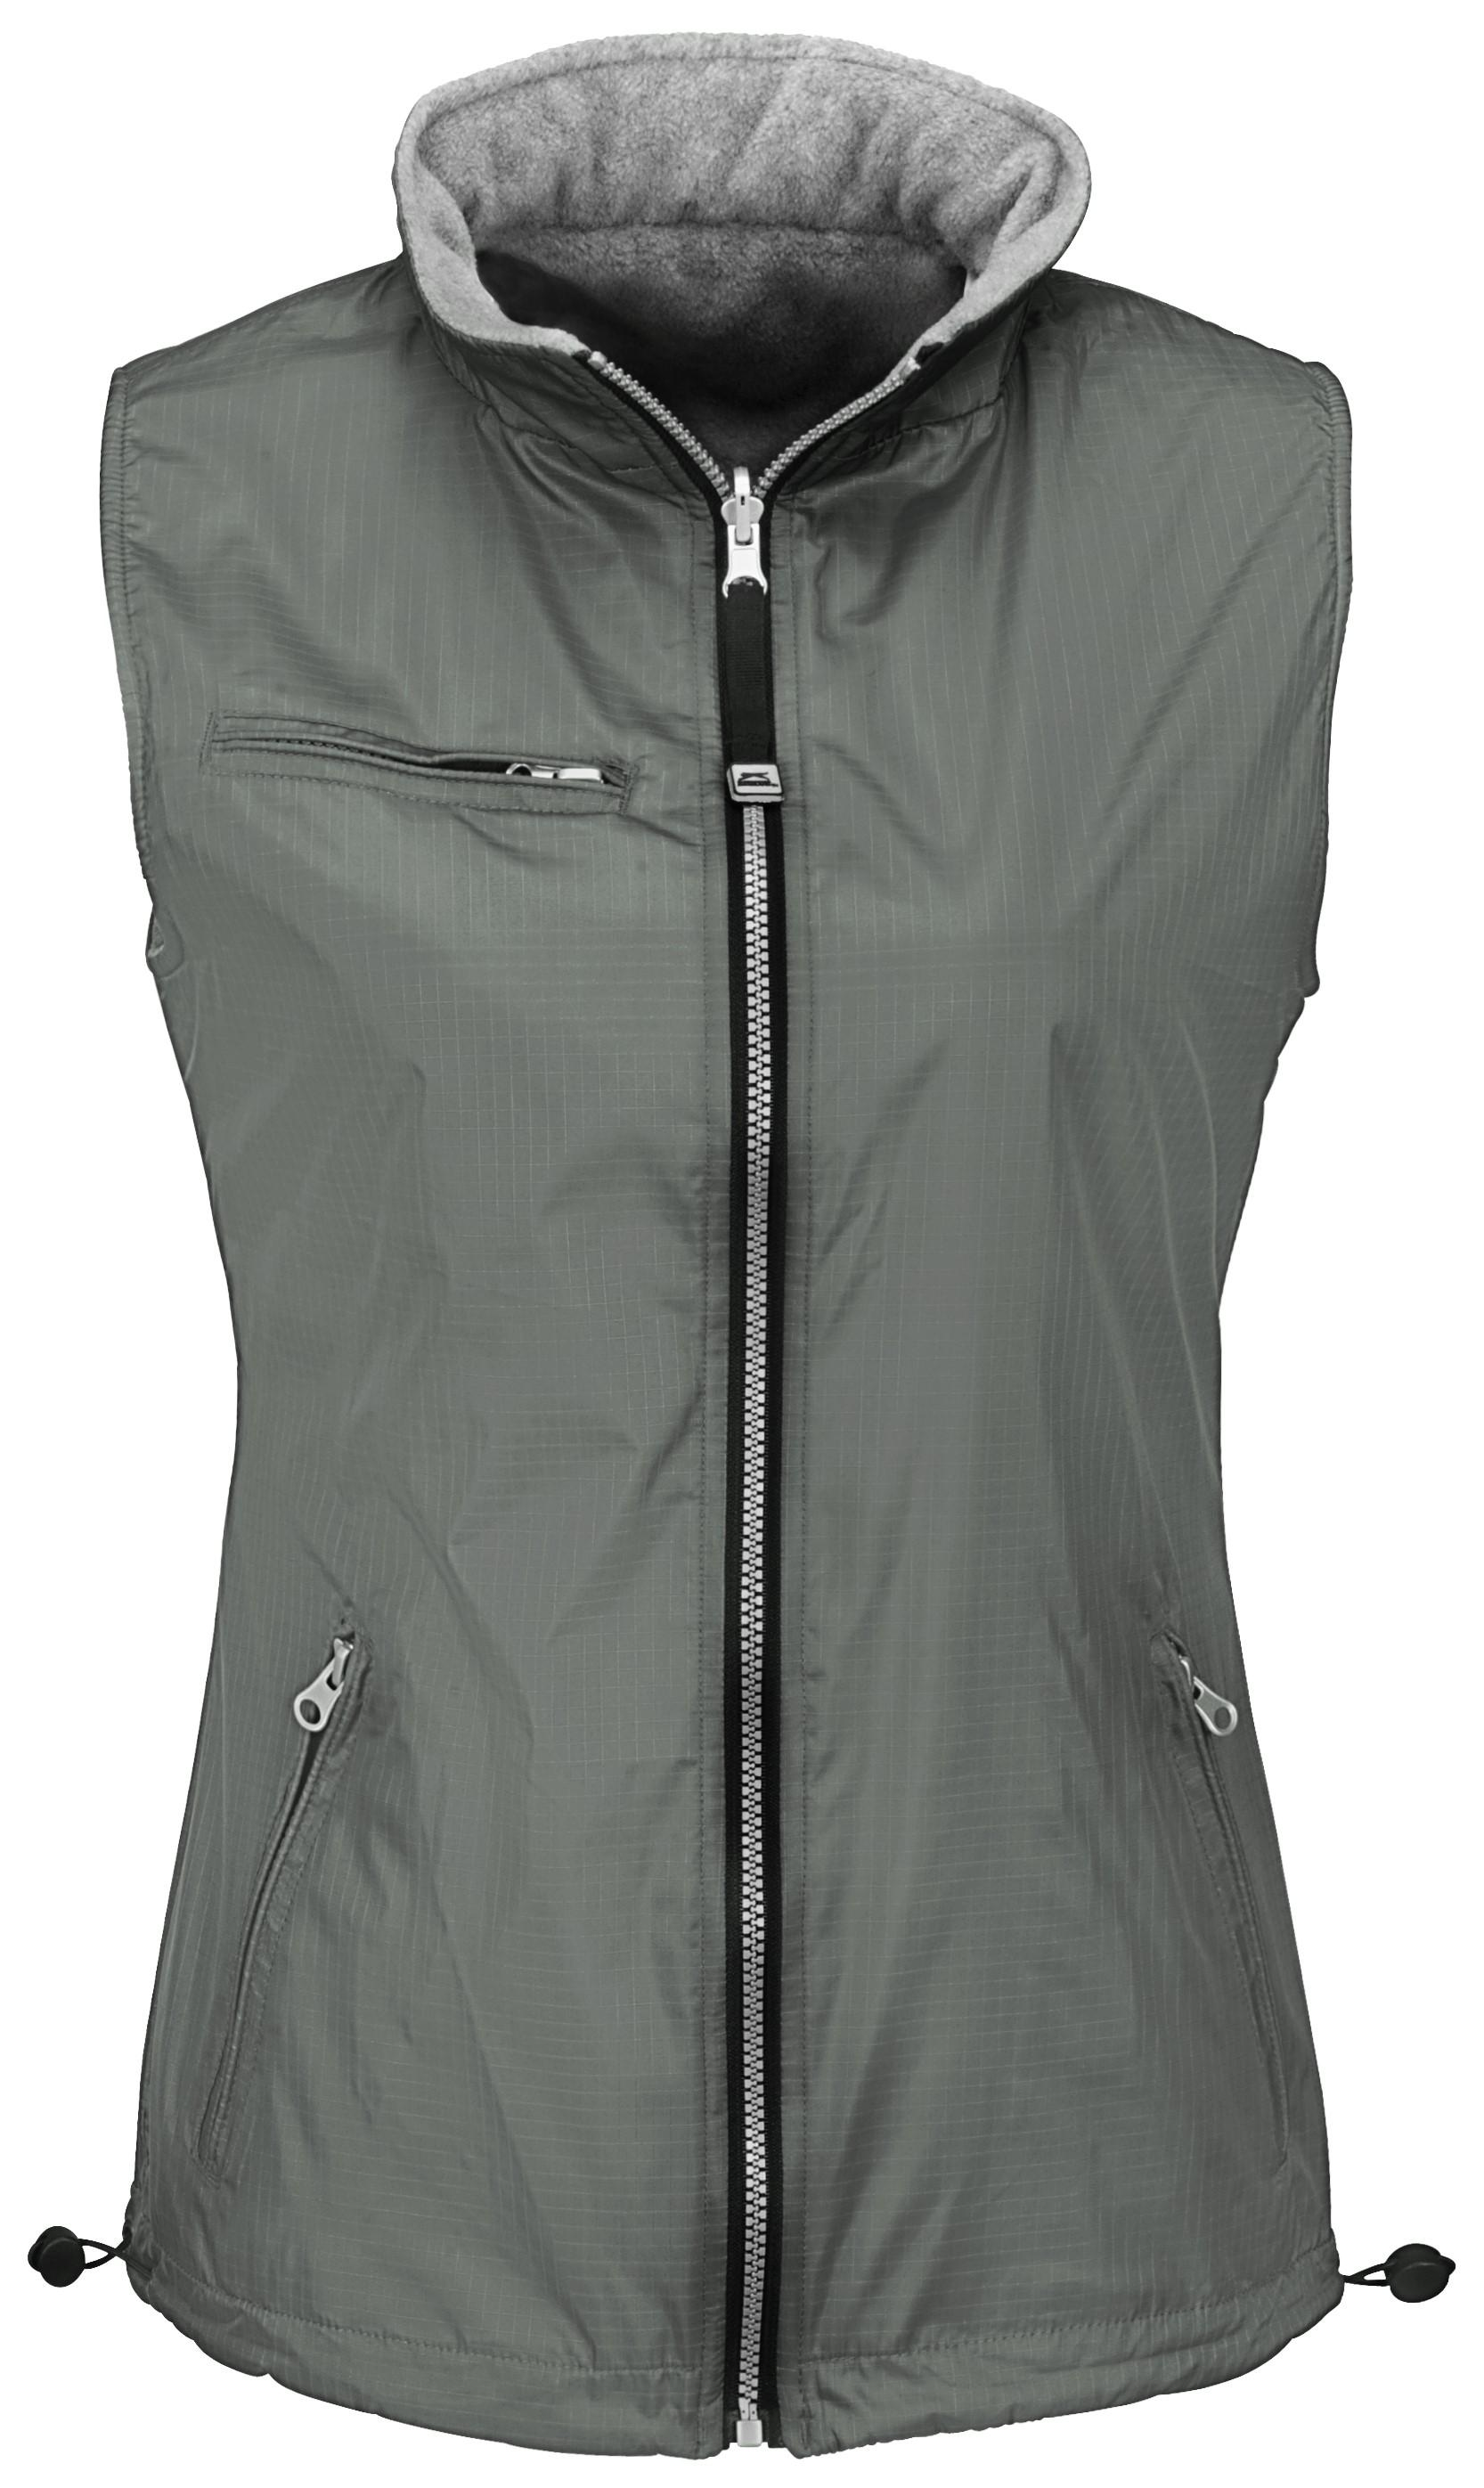 Ladies Reversible Fusion Bodywarmer - Gr Only